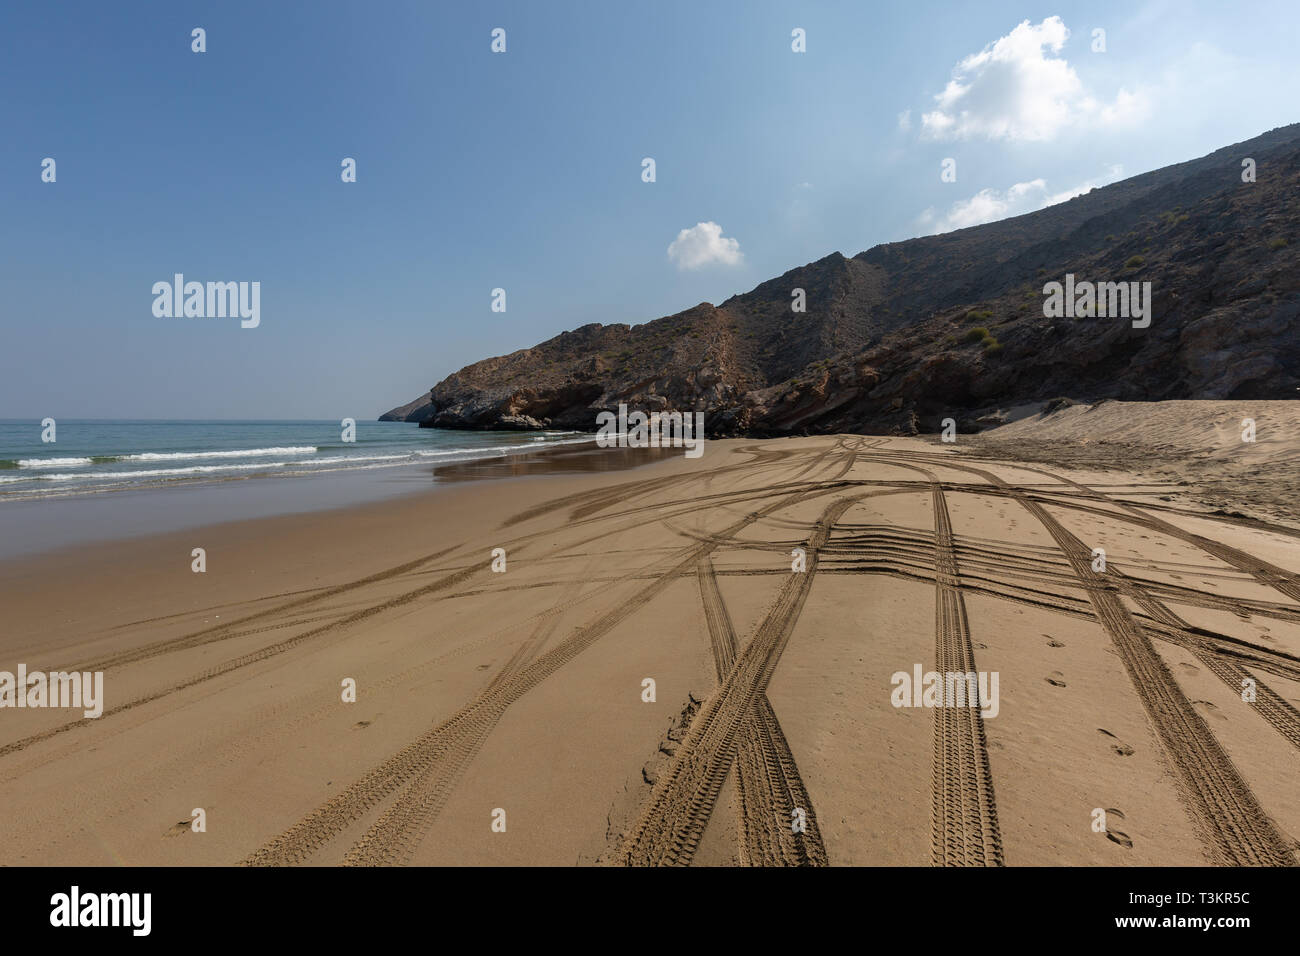 Empty Yiti Beach in the morning, tire tracks on the sand near Muscat - Sultanate of Oman - Stock Image